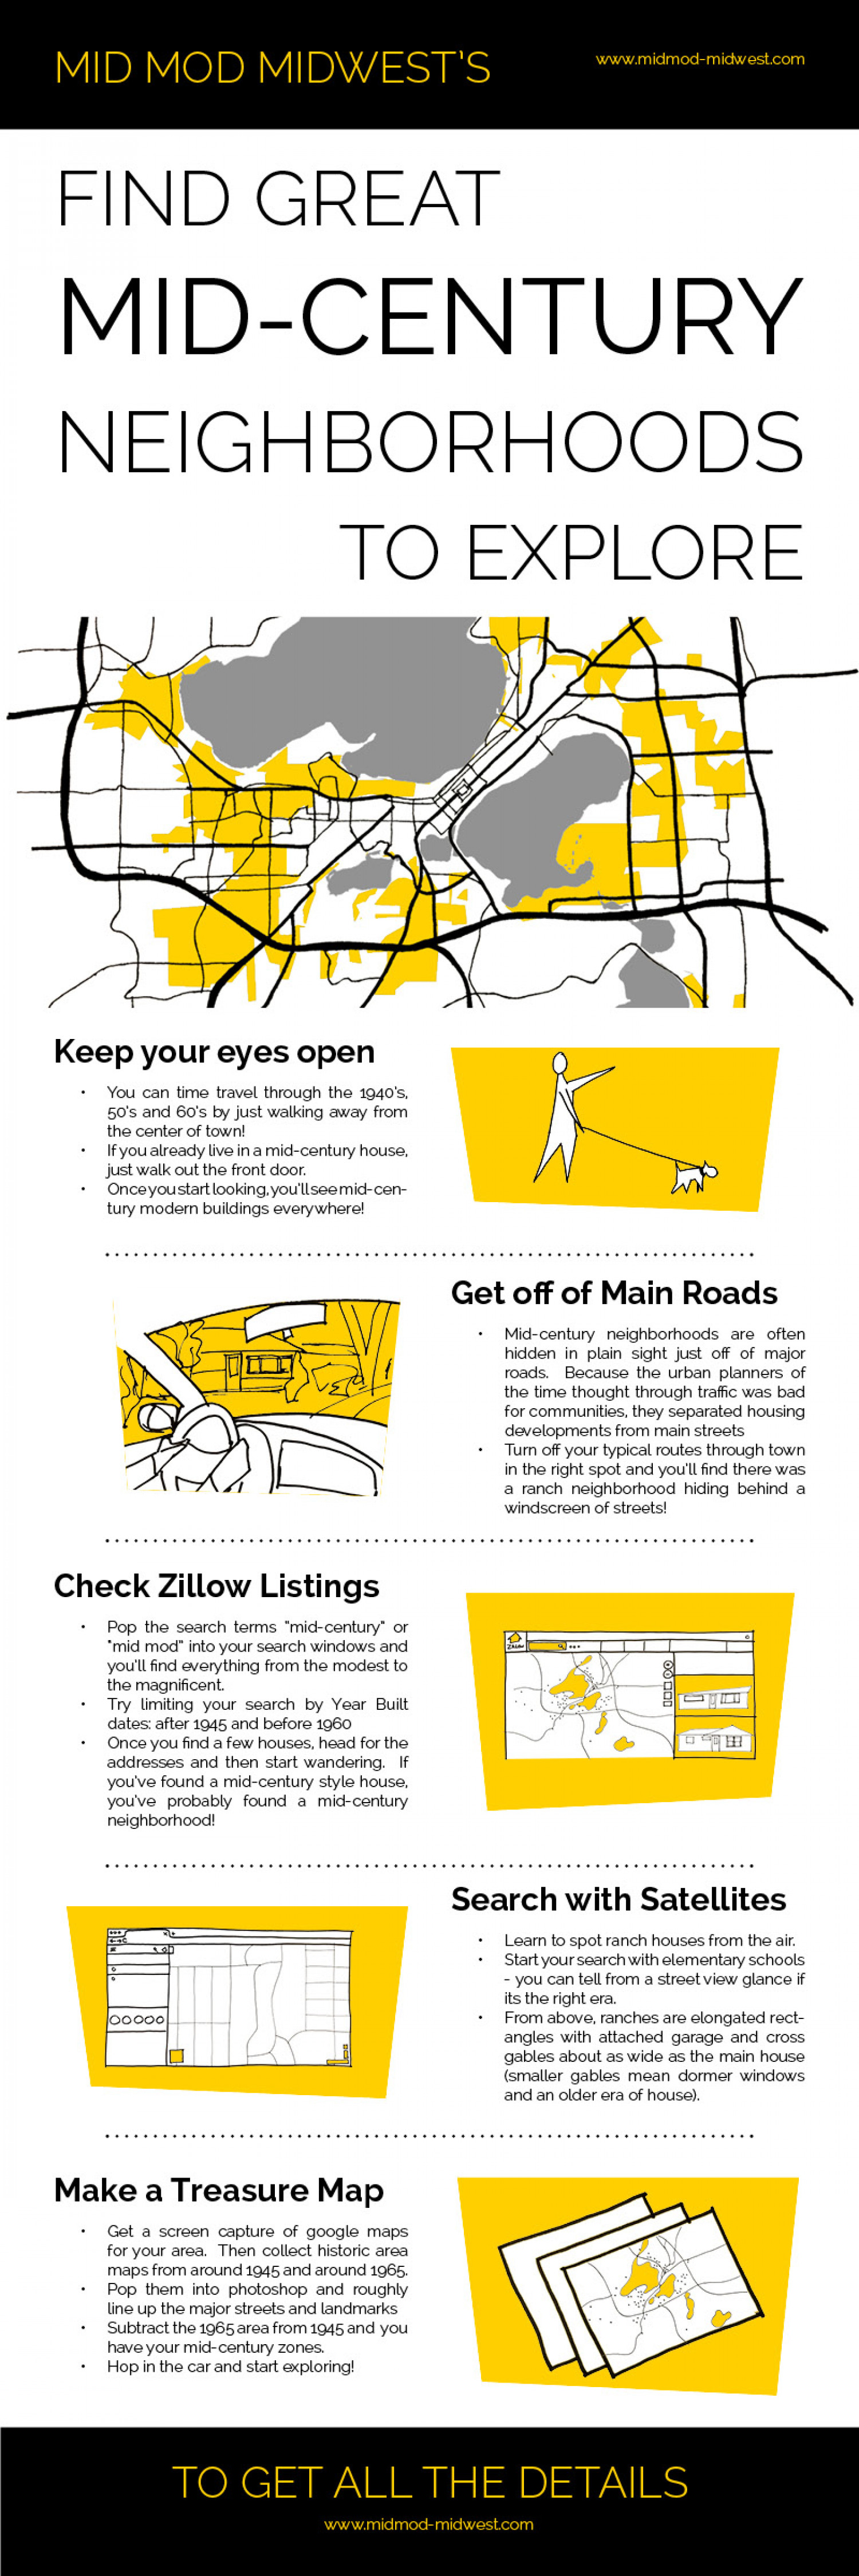 How to Find Great Mid-Century Neighborhoods to Explore Infographic